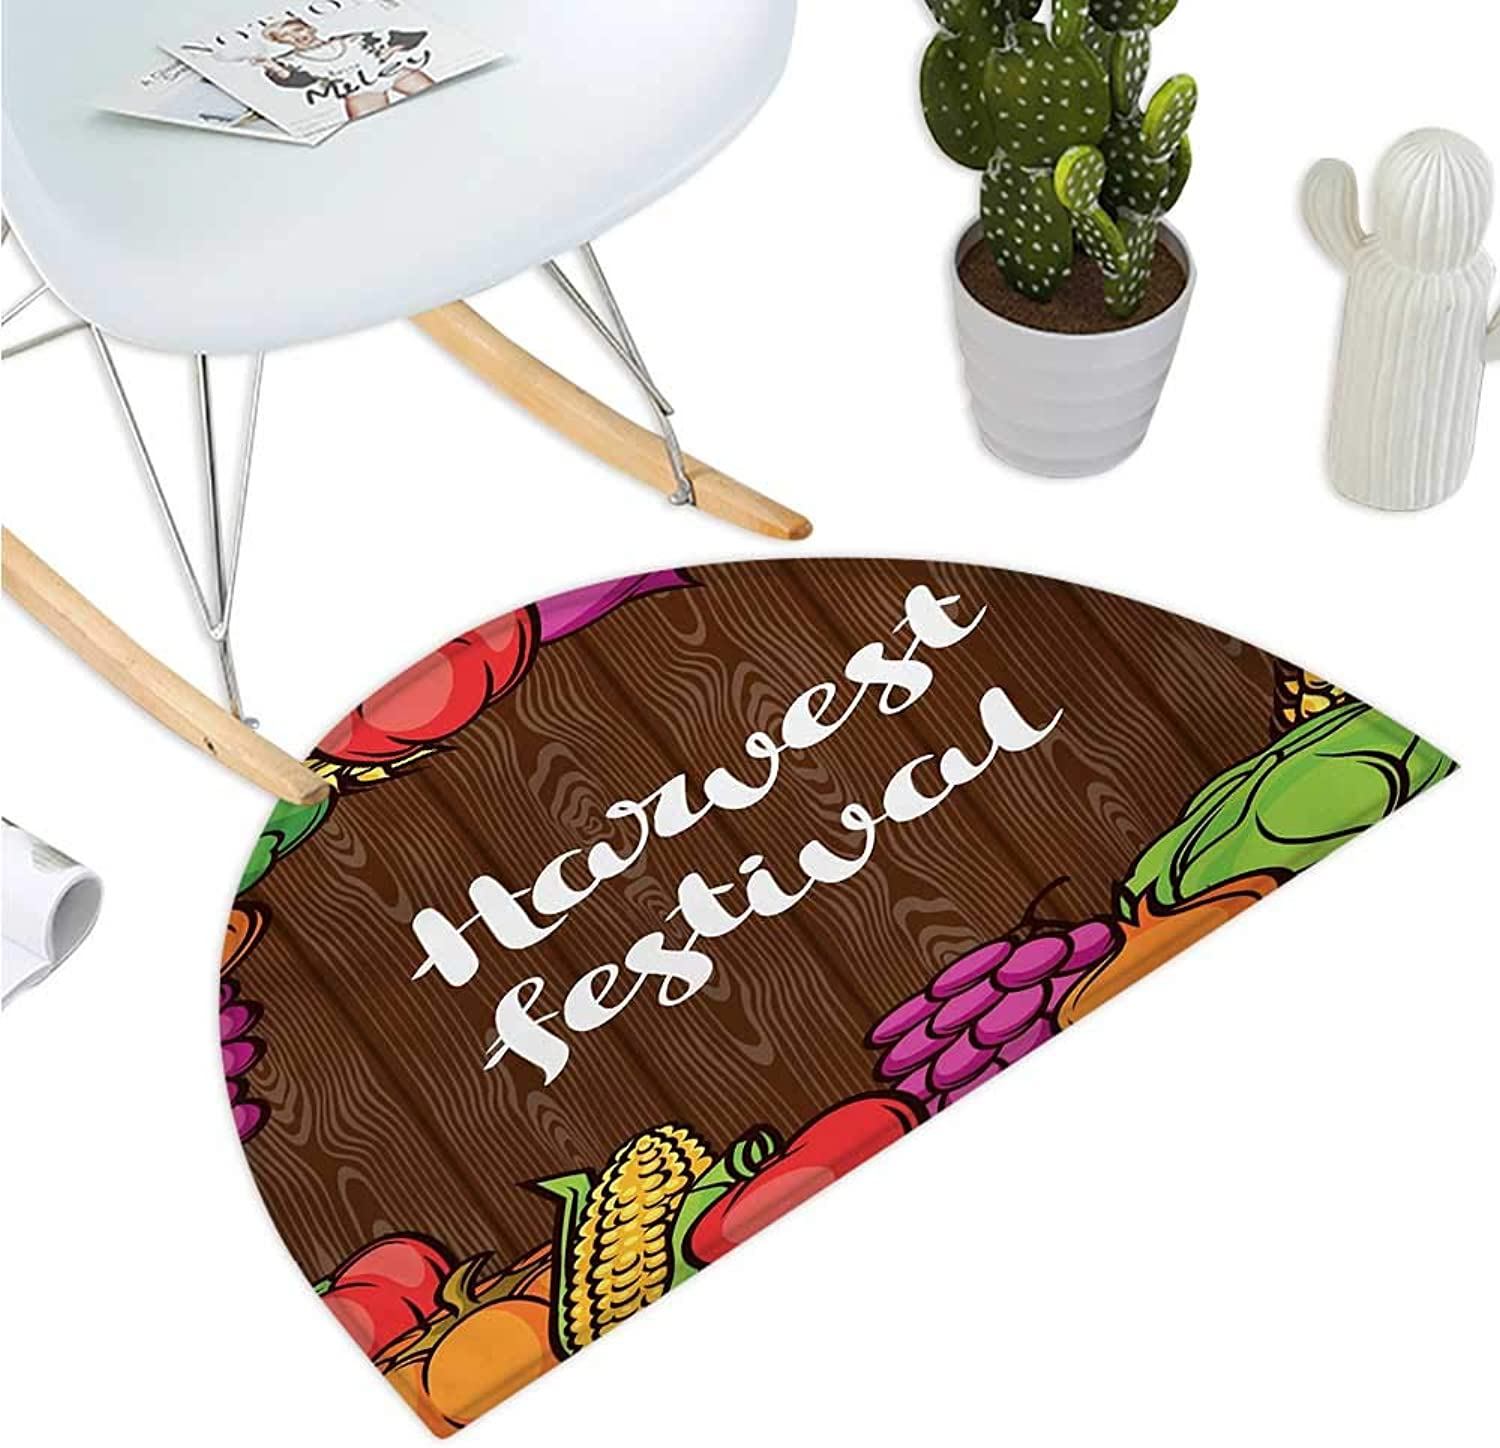 Harvest Half Round Door mats Cartoon Style colorful Food Frame Traditional Harvest Festival Calligraphy Bathroom Mat H 39.3  xD 59  Brown Multicolor